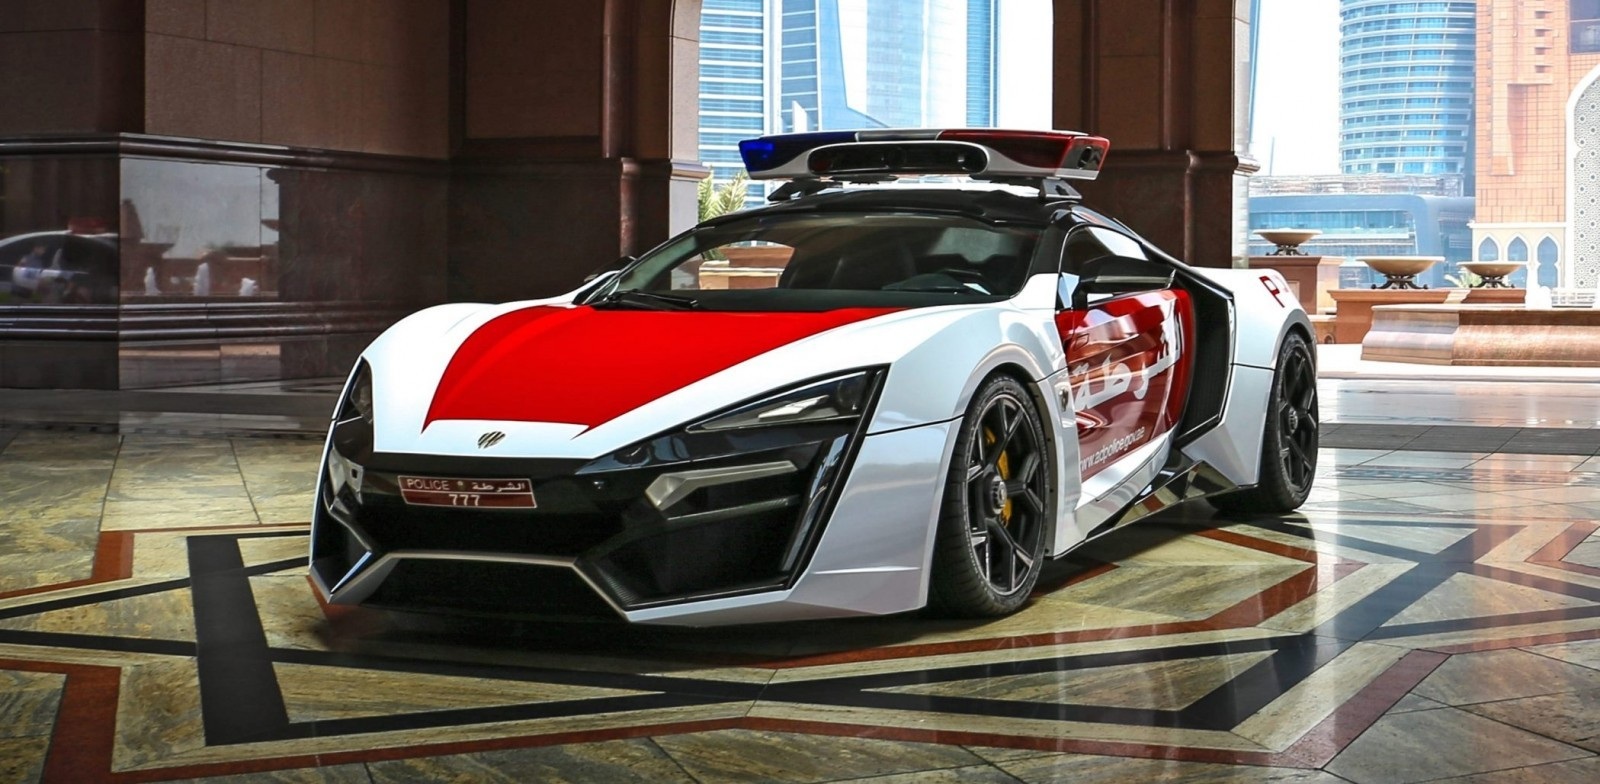 2015 W Motors Lykan Hypersport Abu Dhabi Patrol Car